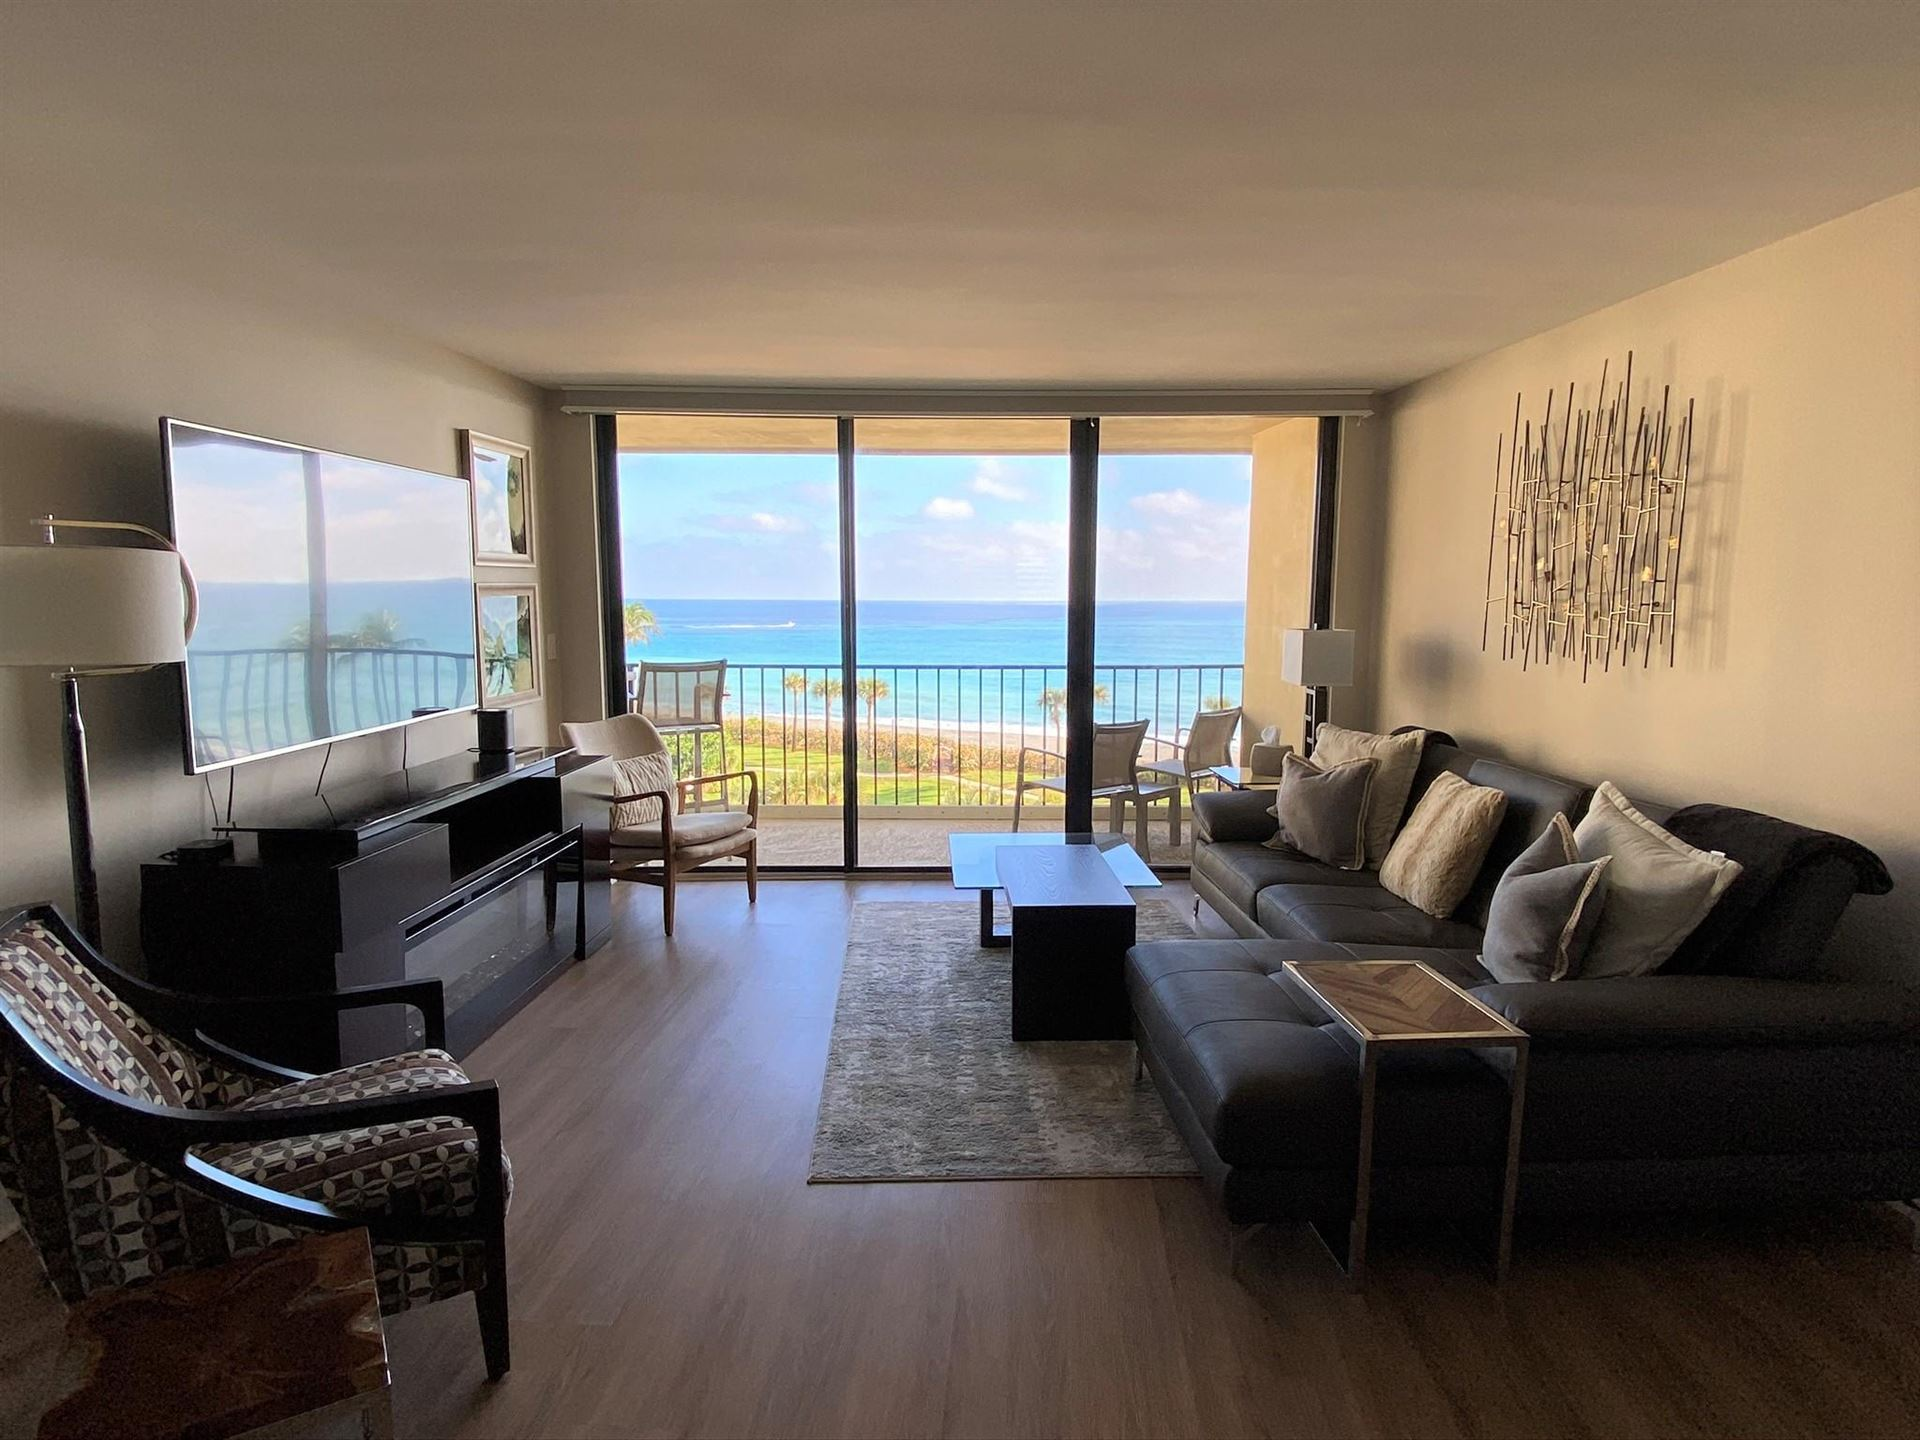 Photo of 100 Ocean Trail Way #607, Jupiter, FL 33477 (MLS # RX-10672462)